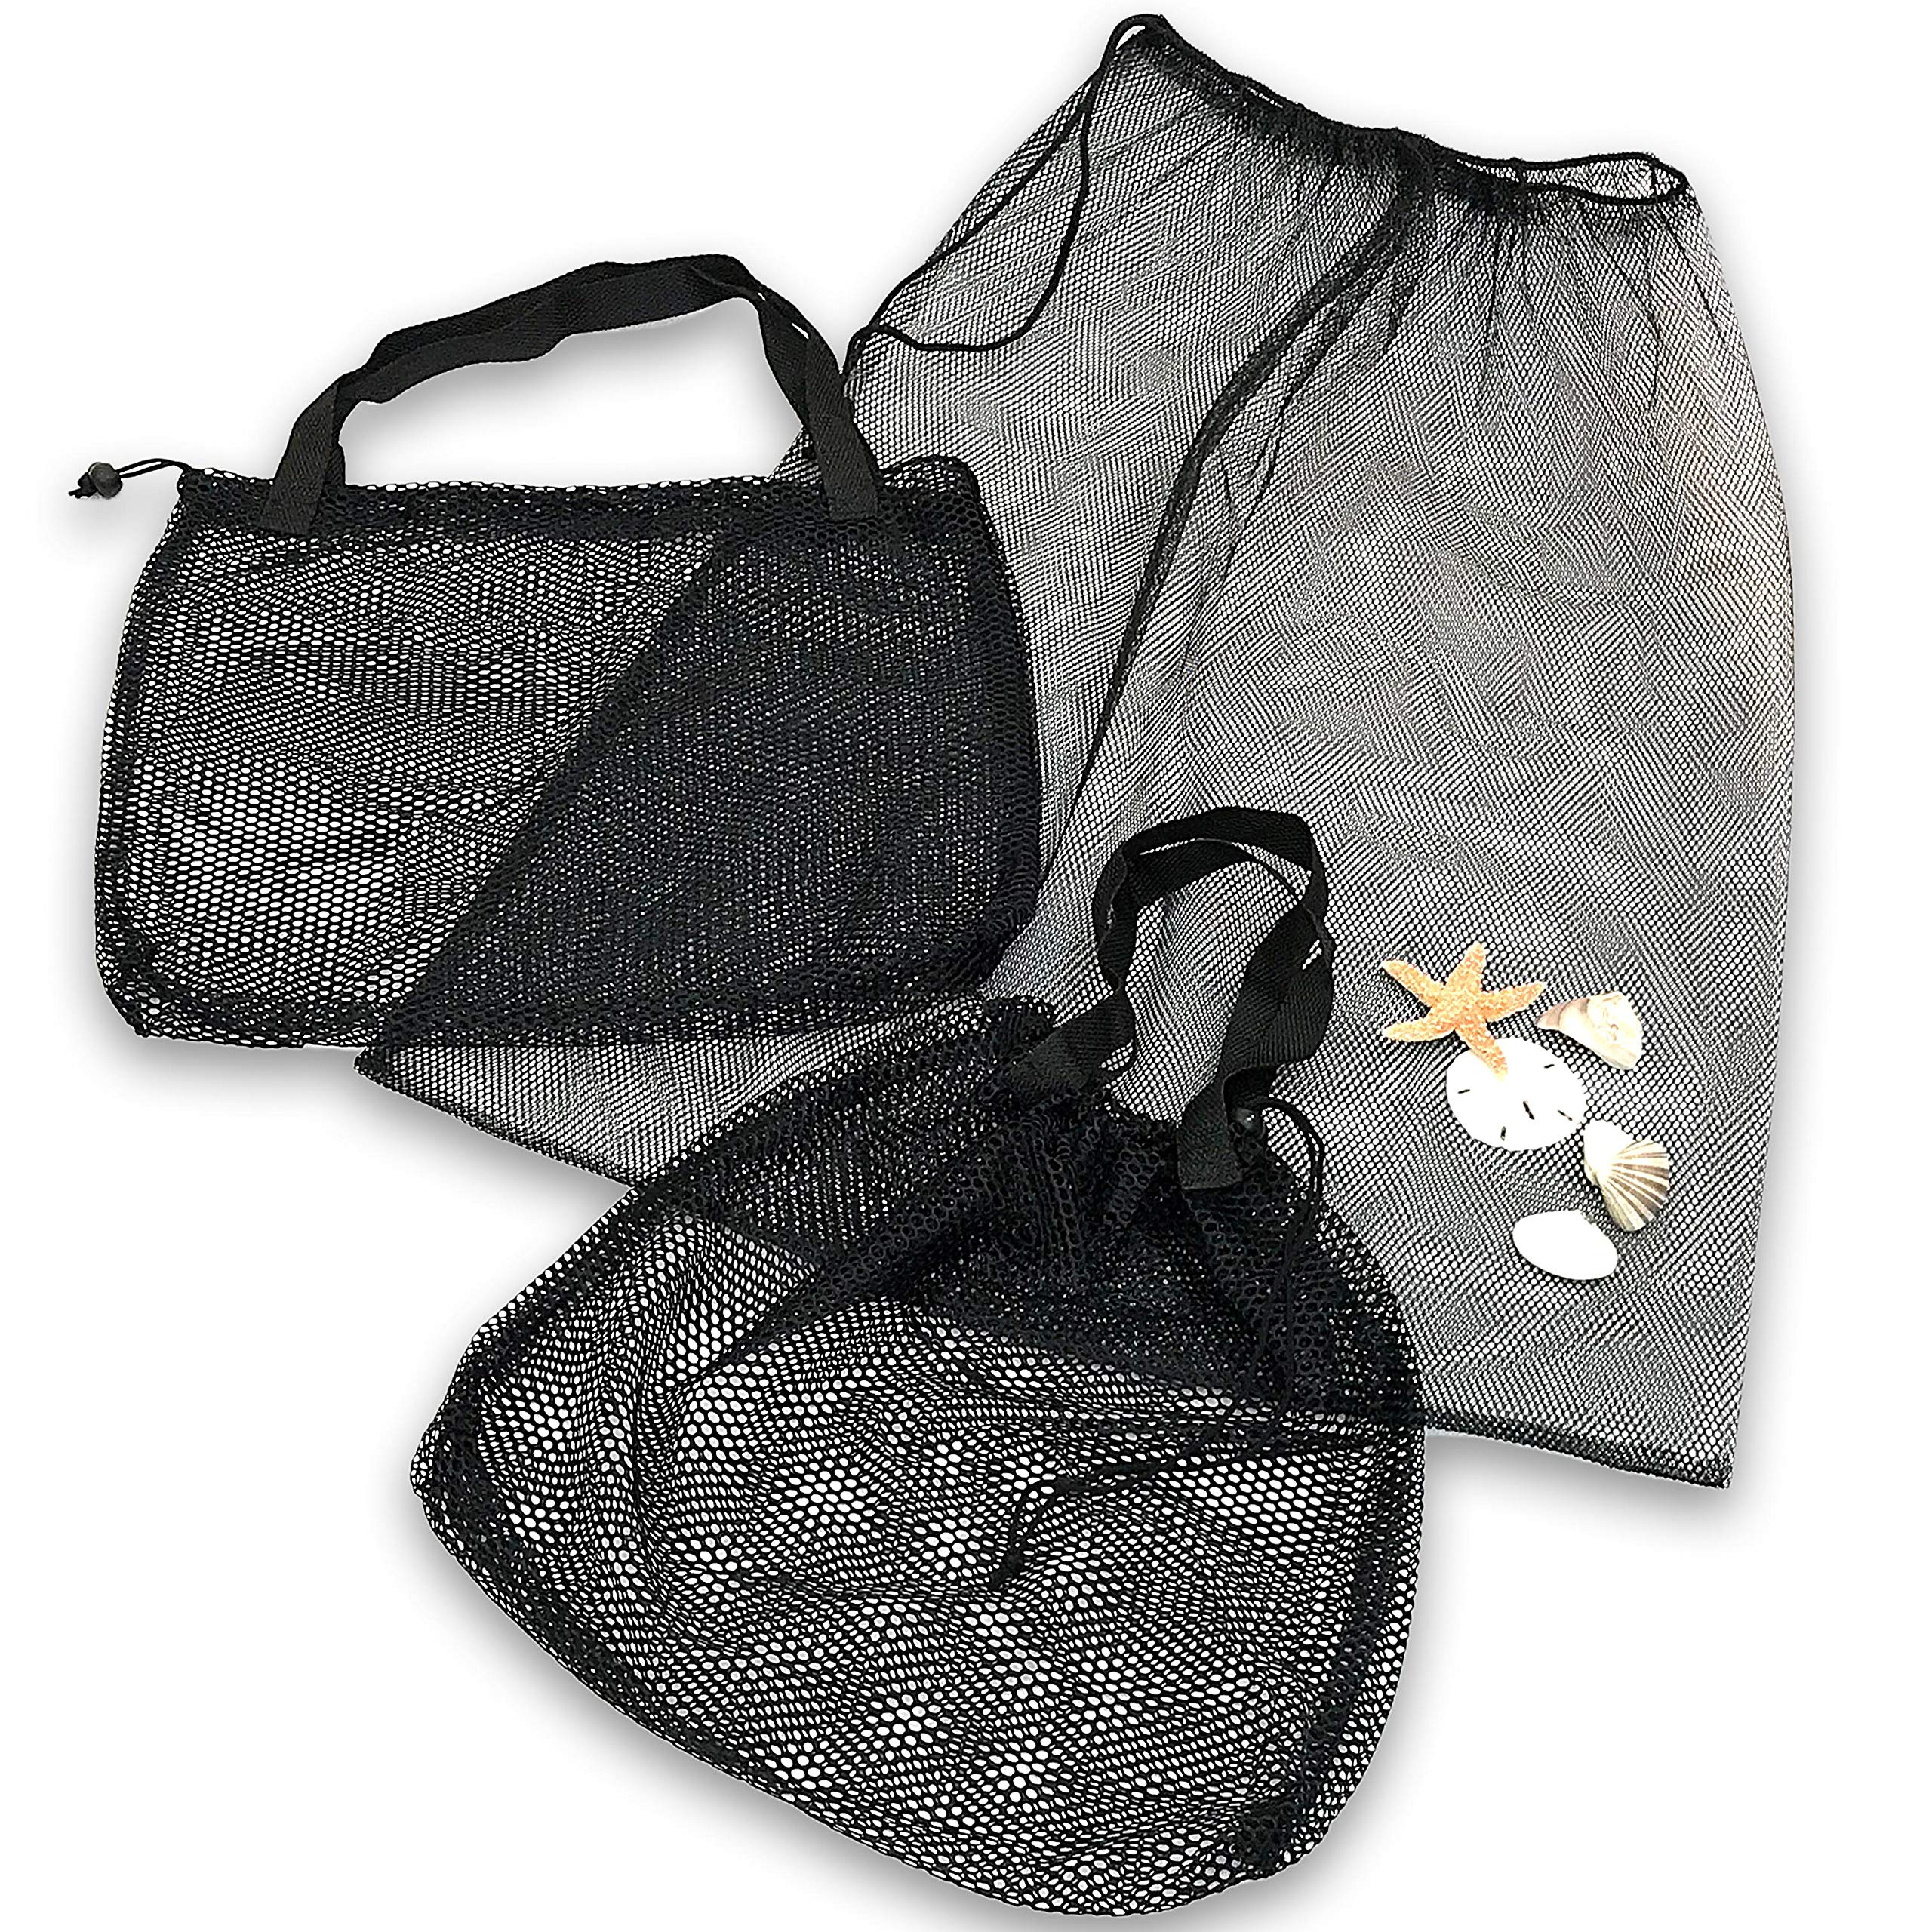 Beach Tote - Gym Bag - Set of 3 with 2 Sizes - Mesh Urban Design for Multi Use by apricot dot (Image #1)